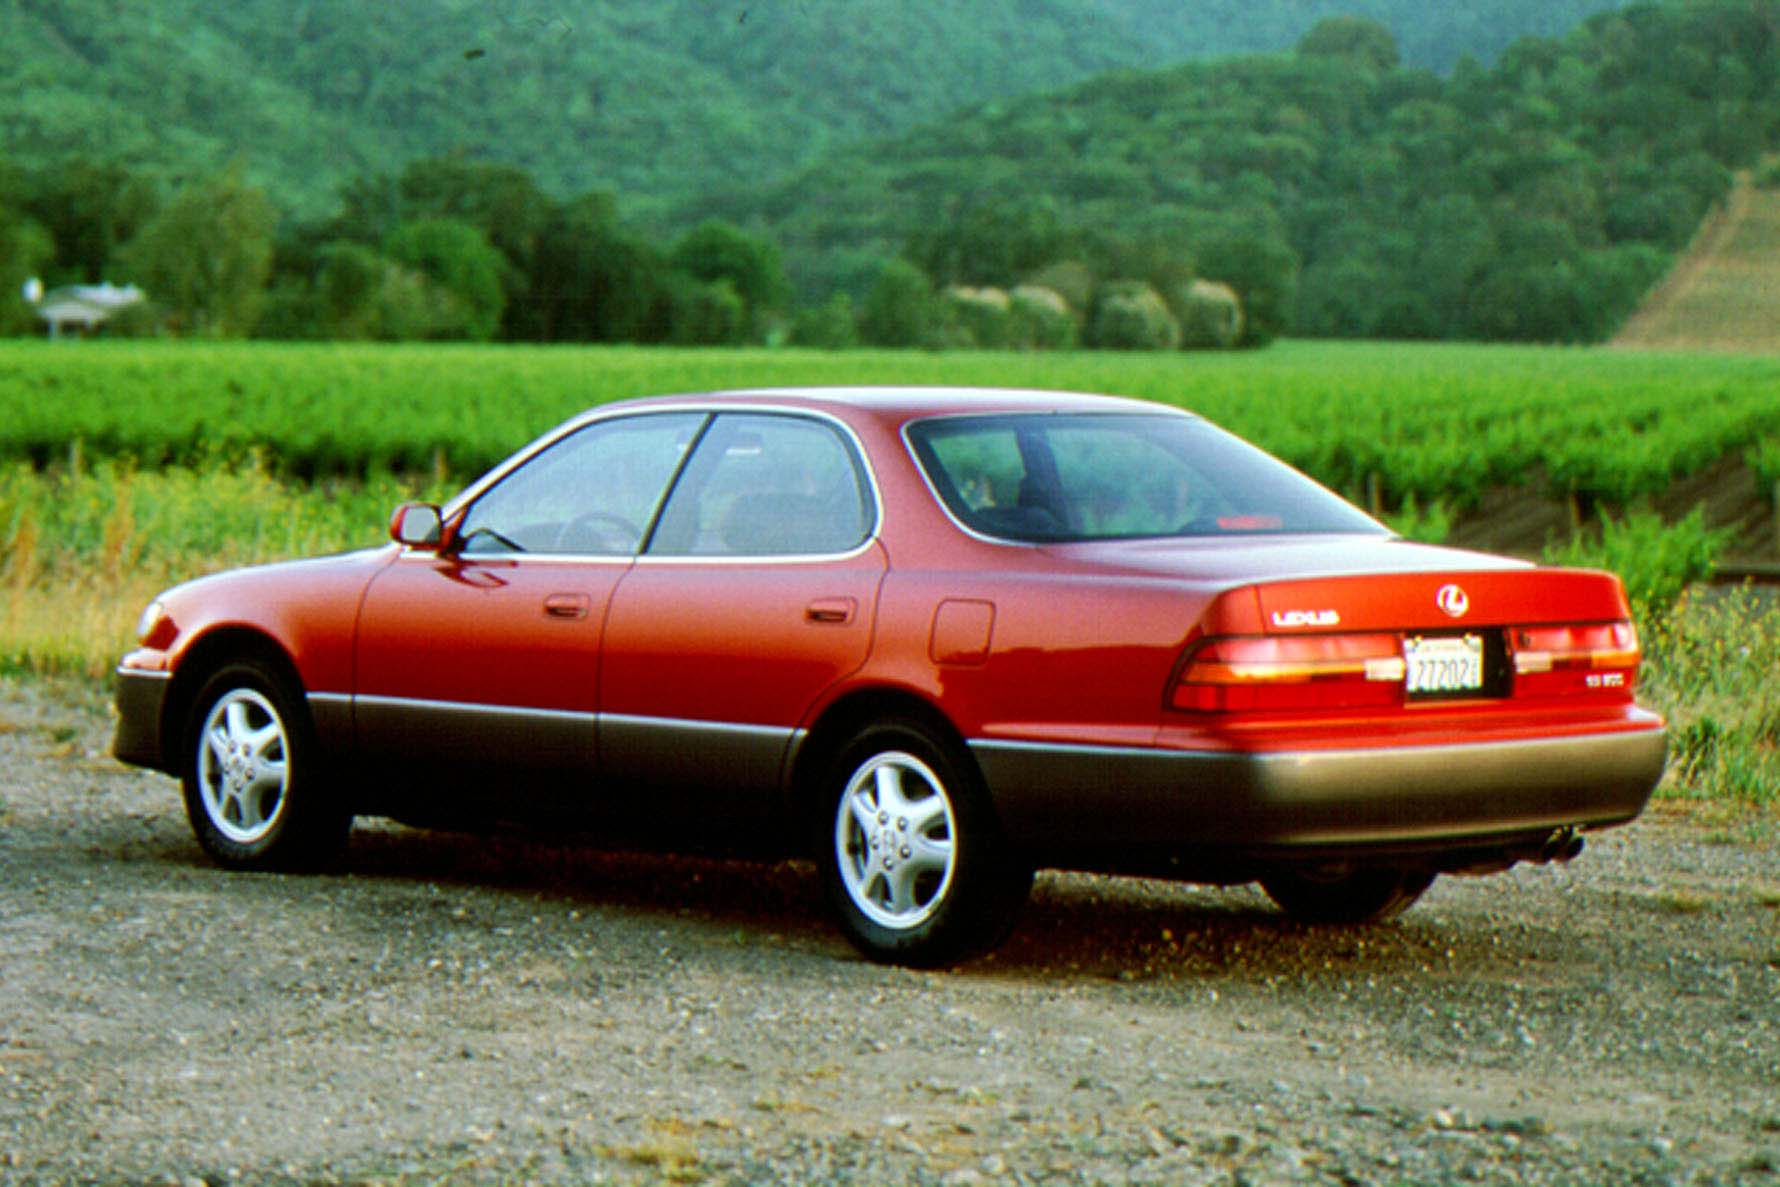 Essentially, the ES350 was a rebadged Camry: front-wheel-drive, 3.0L V6, lots of leather. That's not exactly groundbreaking stuff, but it was what the customer wanted, a proven and reliable ride with a slightly more advanced suspension, quieter ride, and modestly more upscale feel.